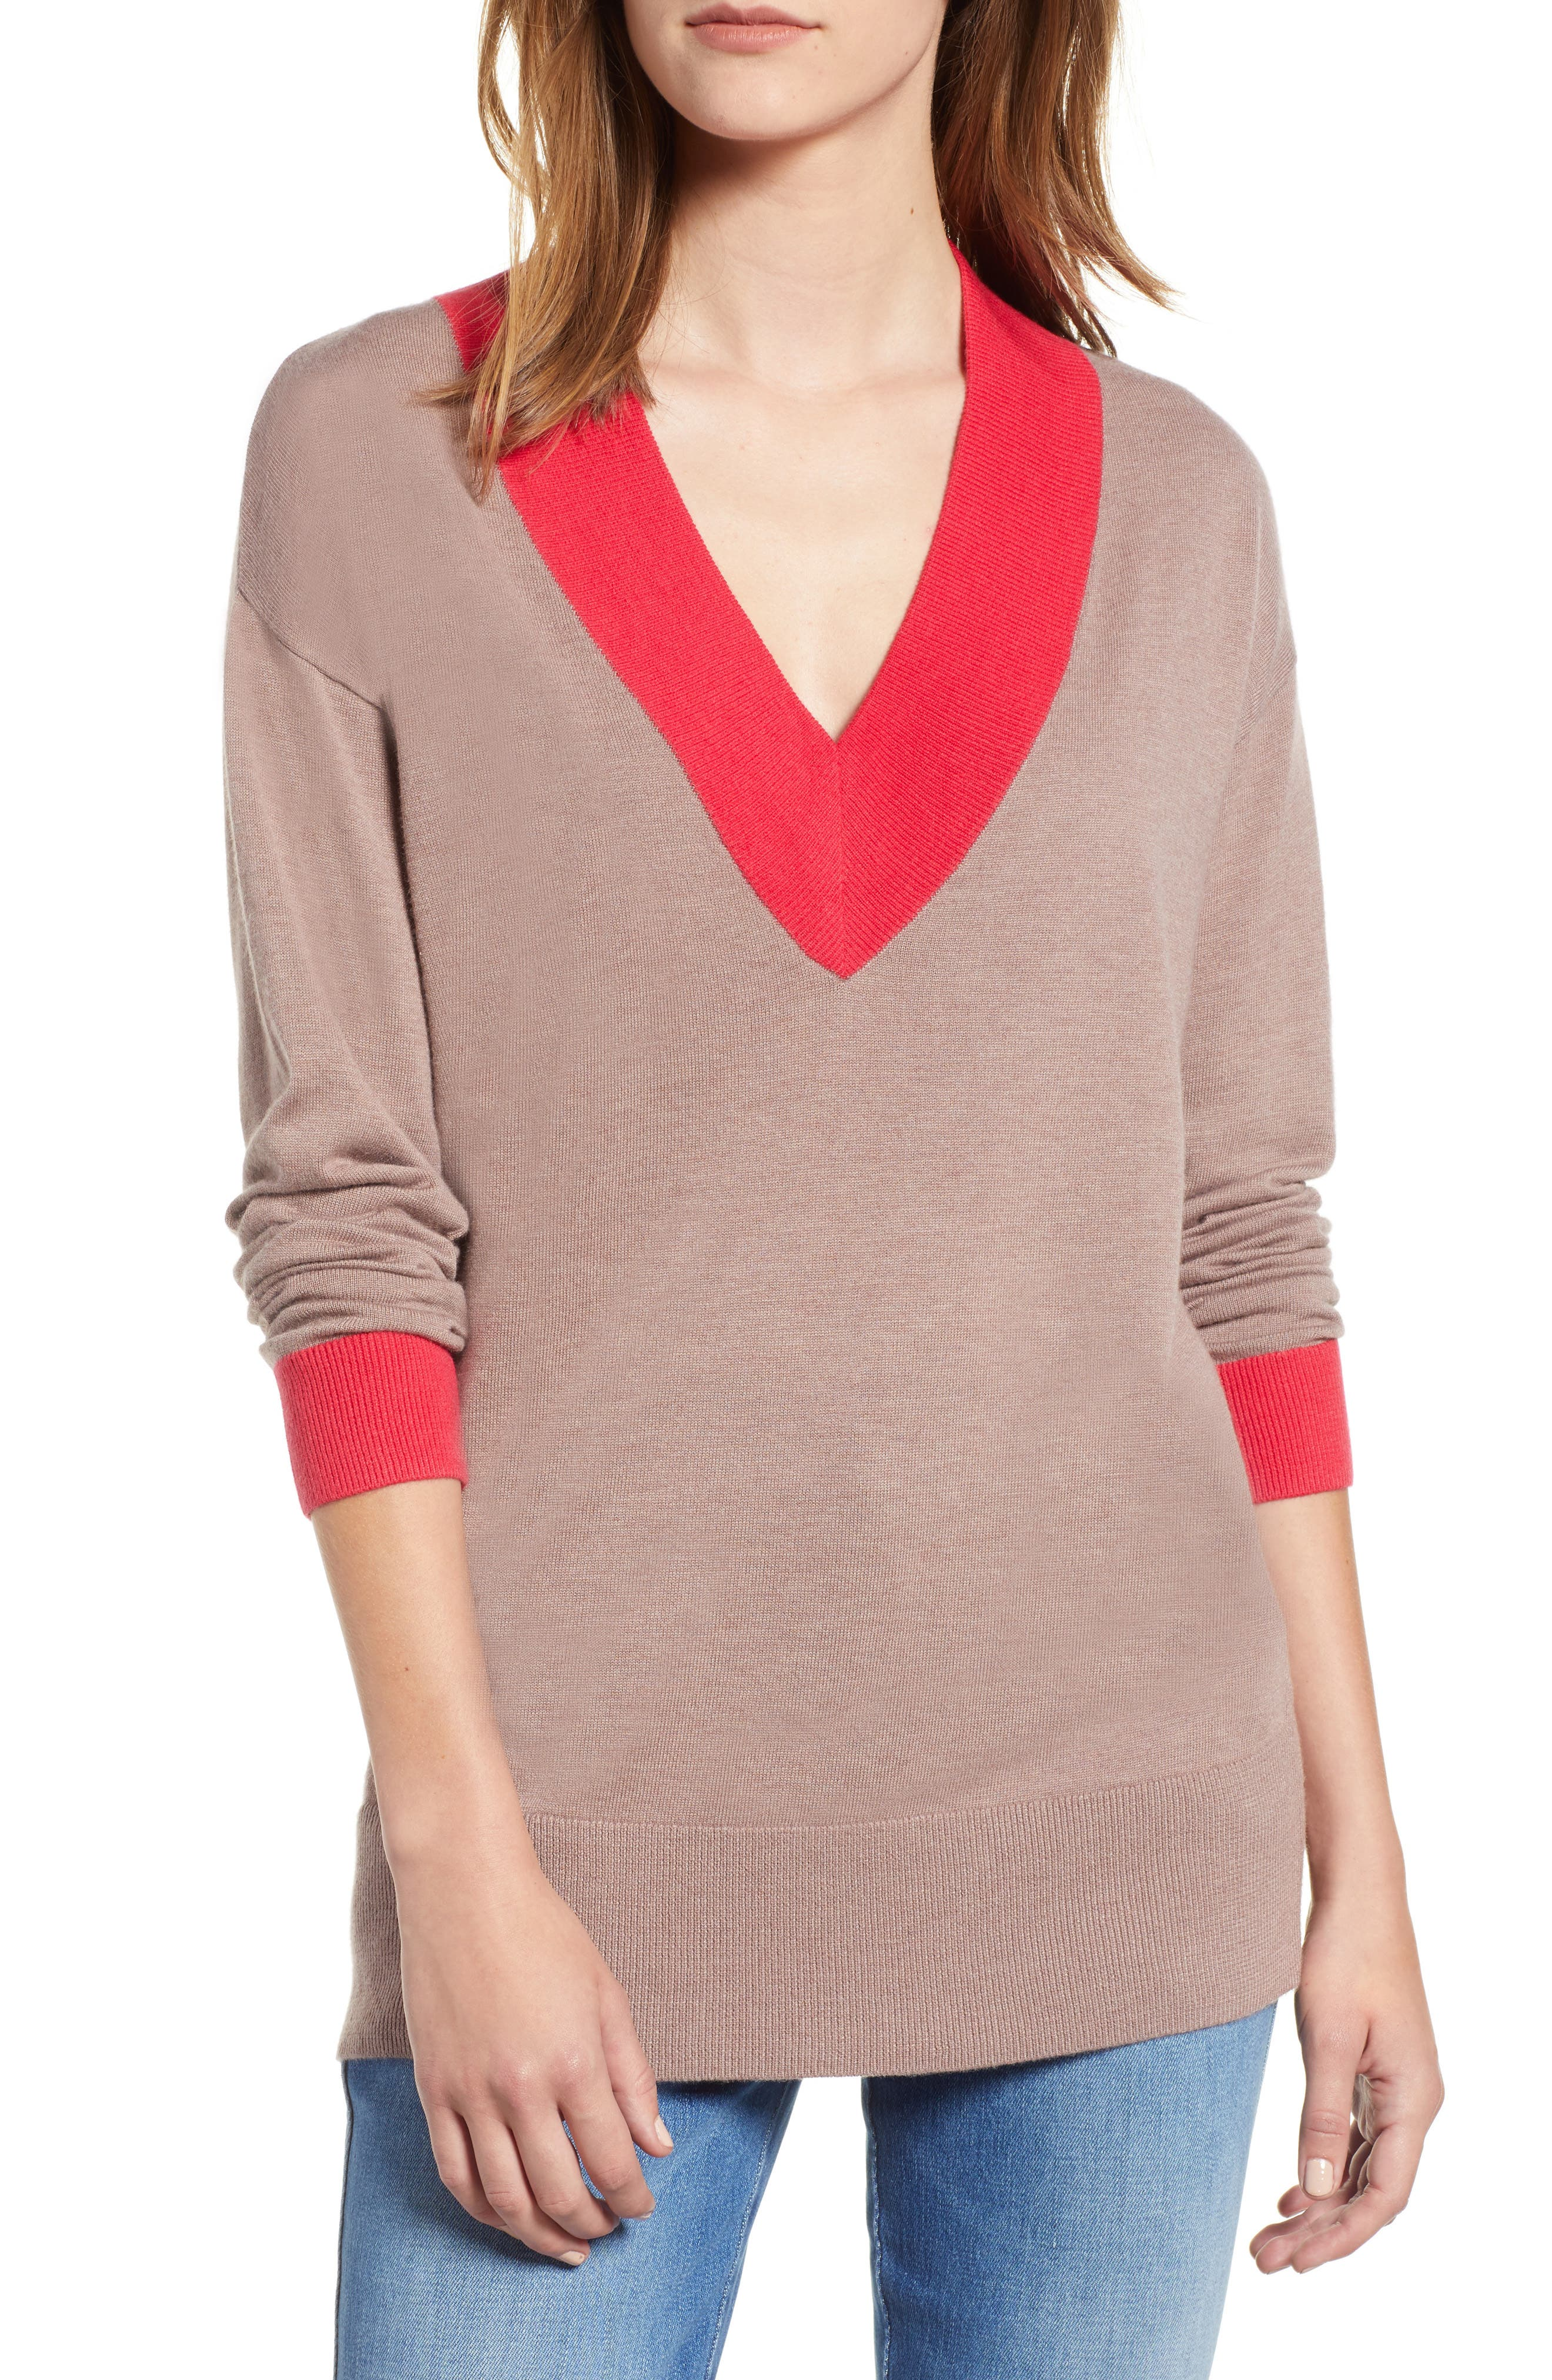 CHELSEA28,                             V-Neck Sweater,                             Main thumbnail 1, color,                             PINK FAWN HEATHER COMBO